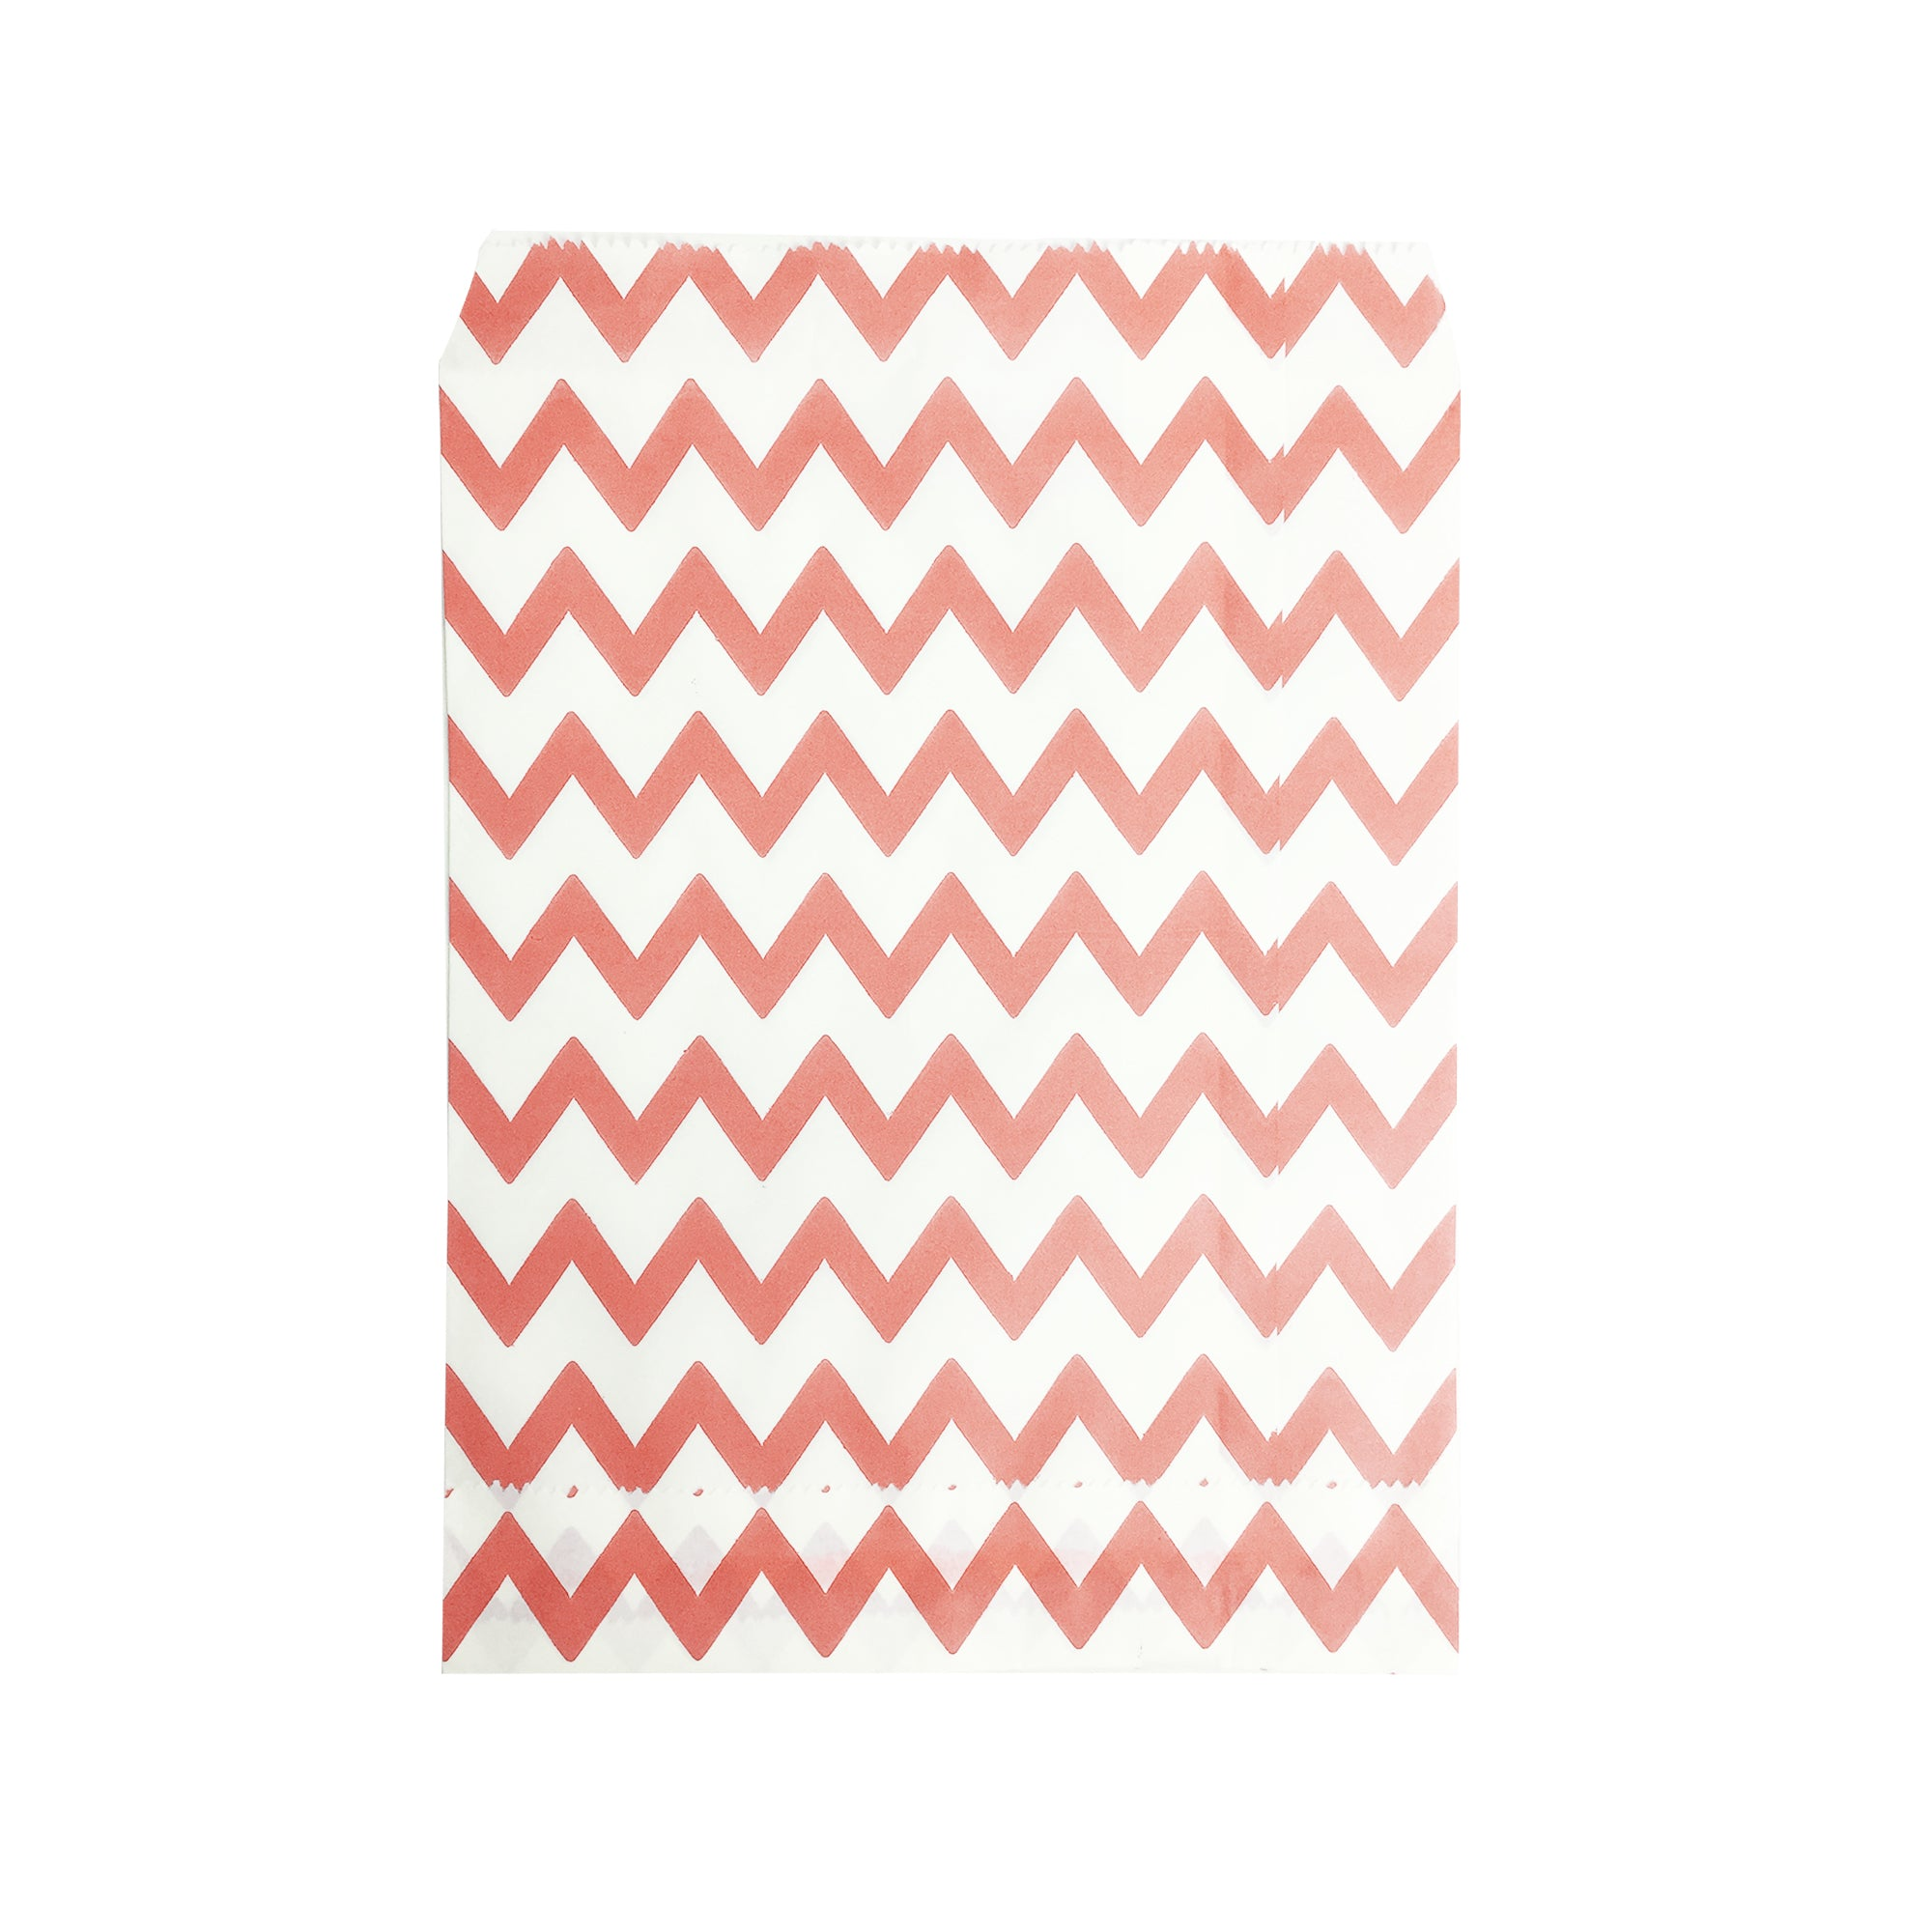 Big Peach Zigzag Paper Bag - 50 pcs